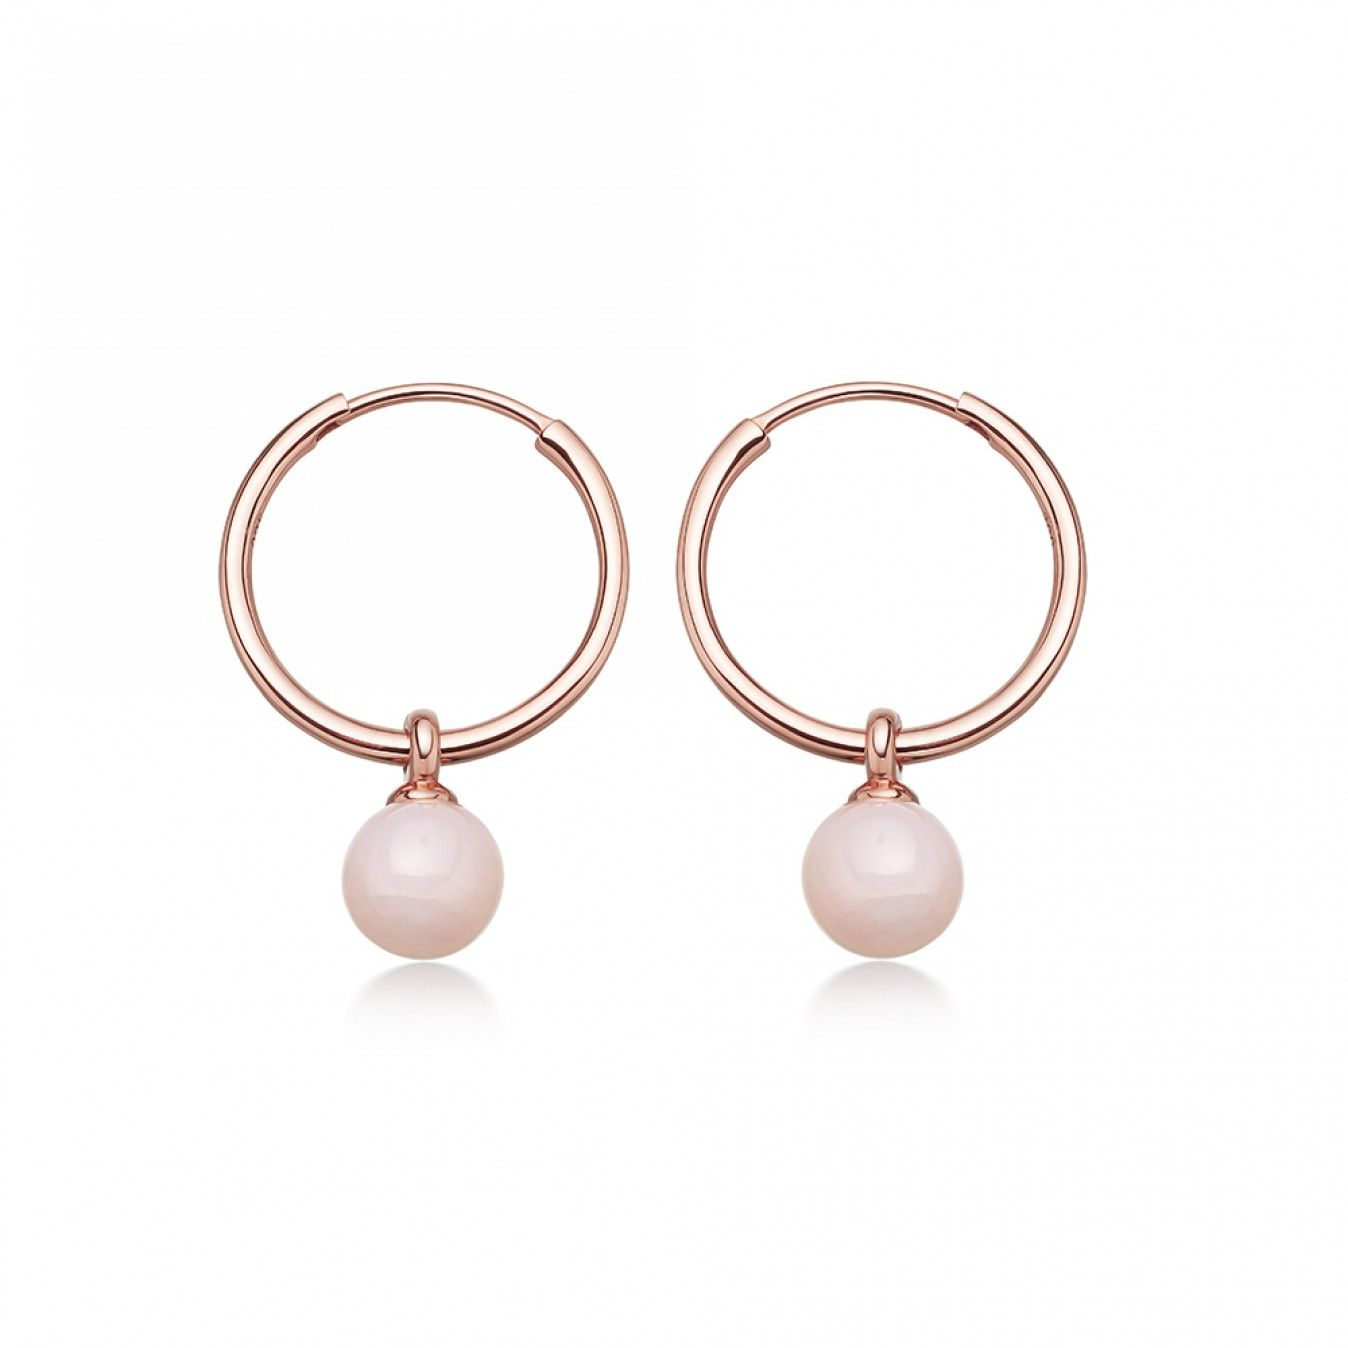 b4051a02e Astley Clarke Pink Opal Vera Drop Hoop Earrings Rose Gold Vermeil ...